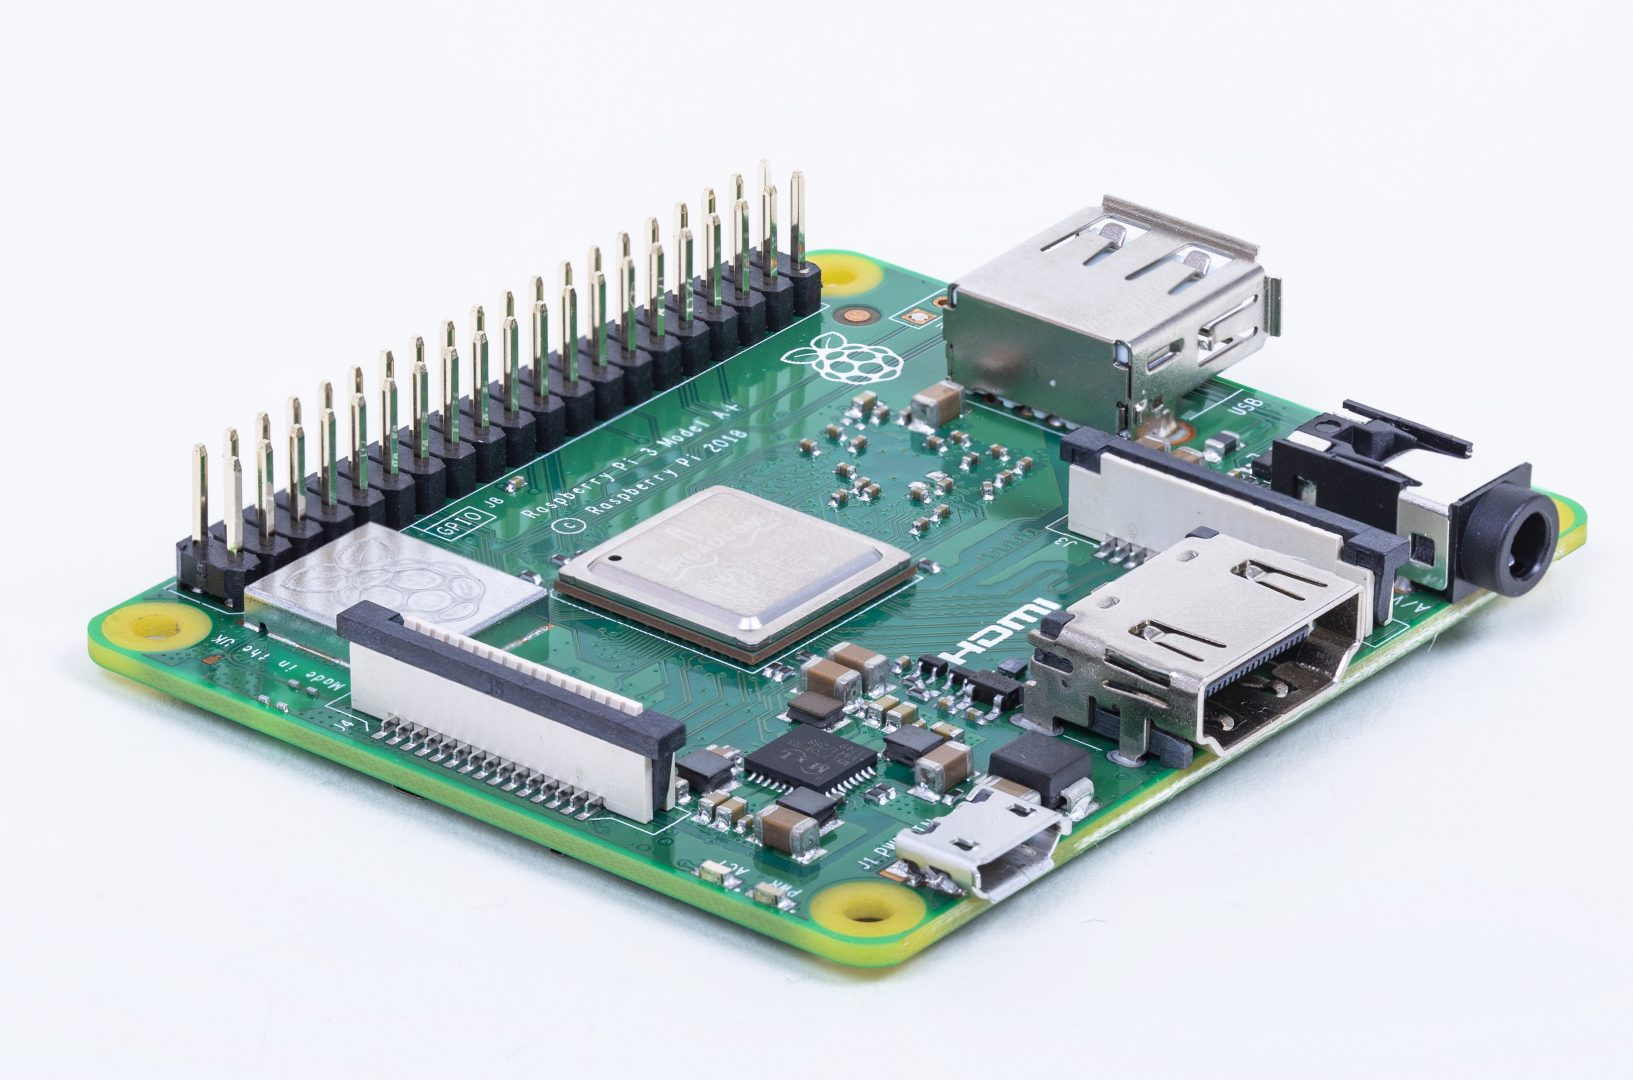 OS Releases: New Version of Raspbian for Raspberry Pi Devices